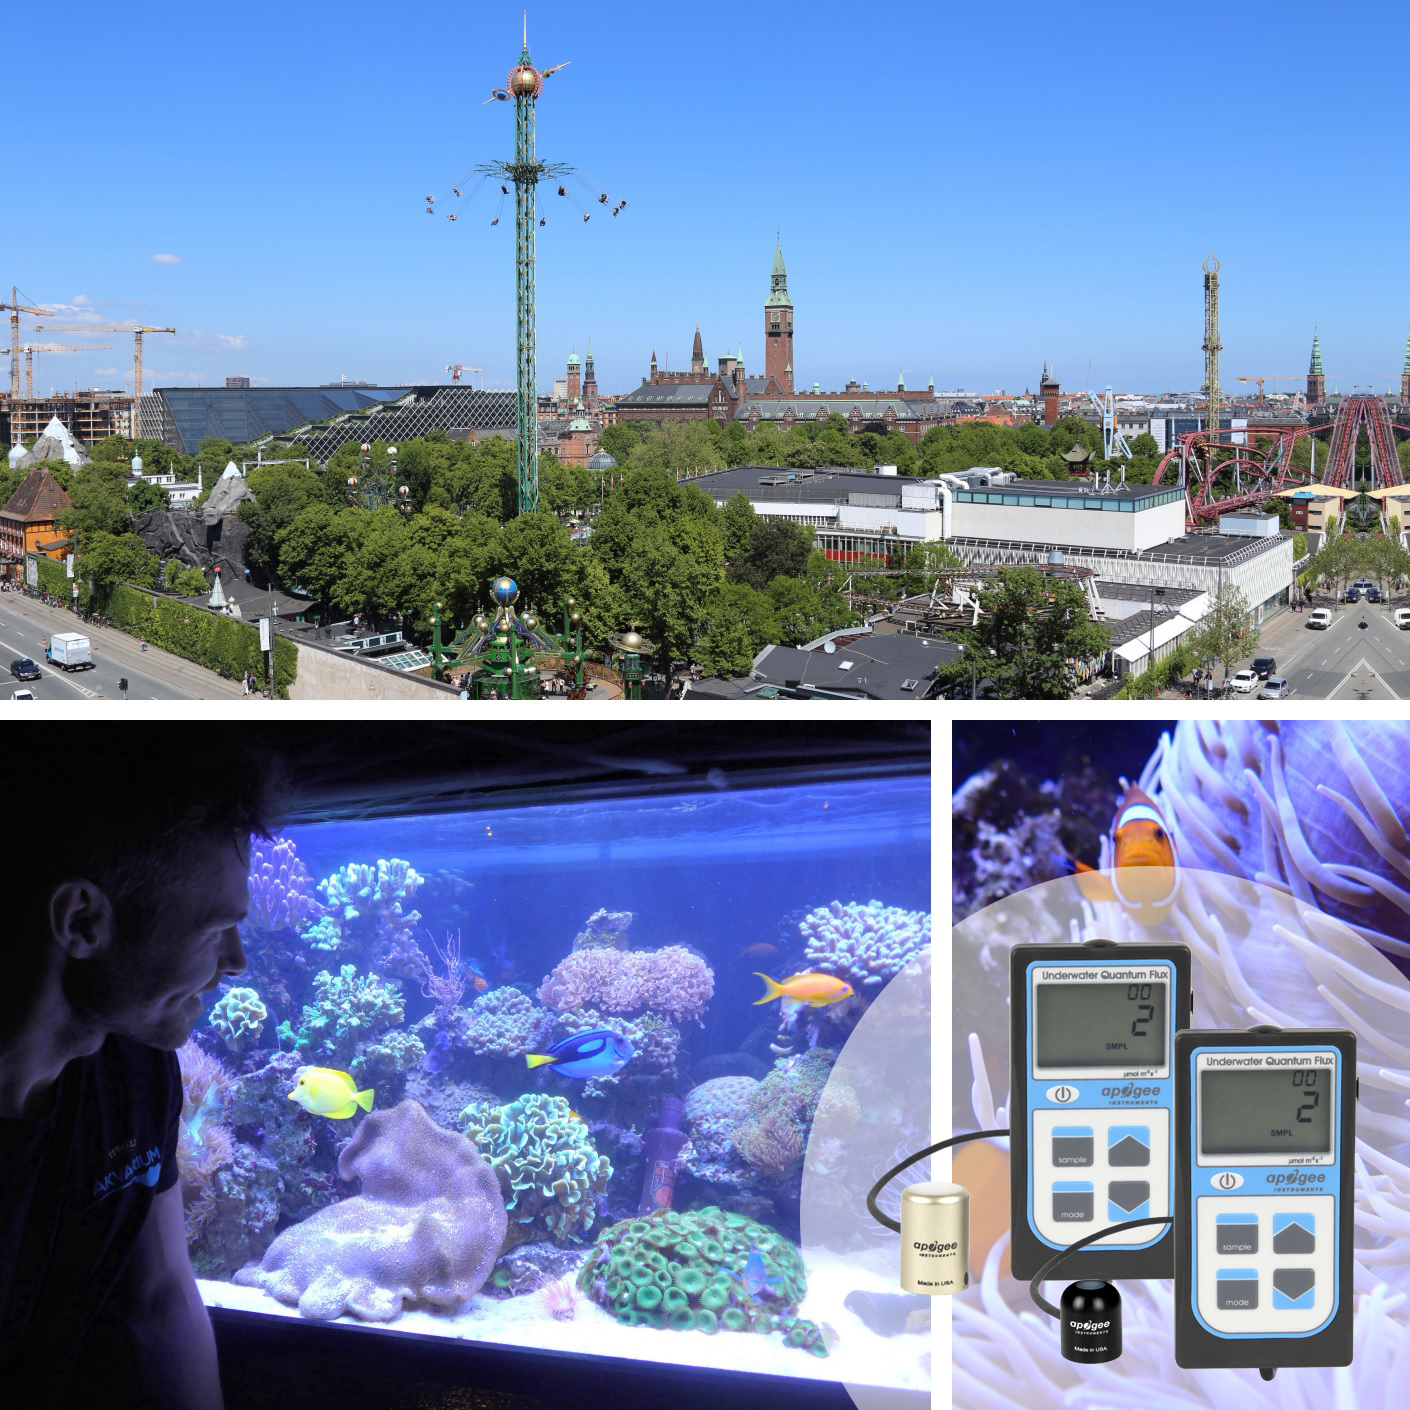 Using Apogee underwater quantum meters to measure light levels in the Tivoli Gardens aquarium exhibition.